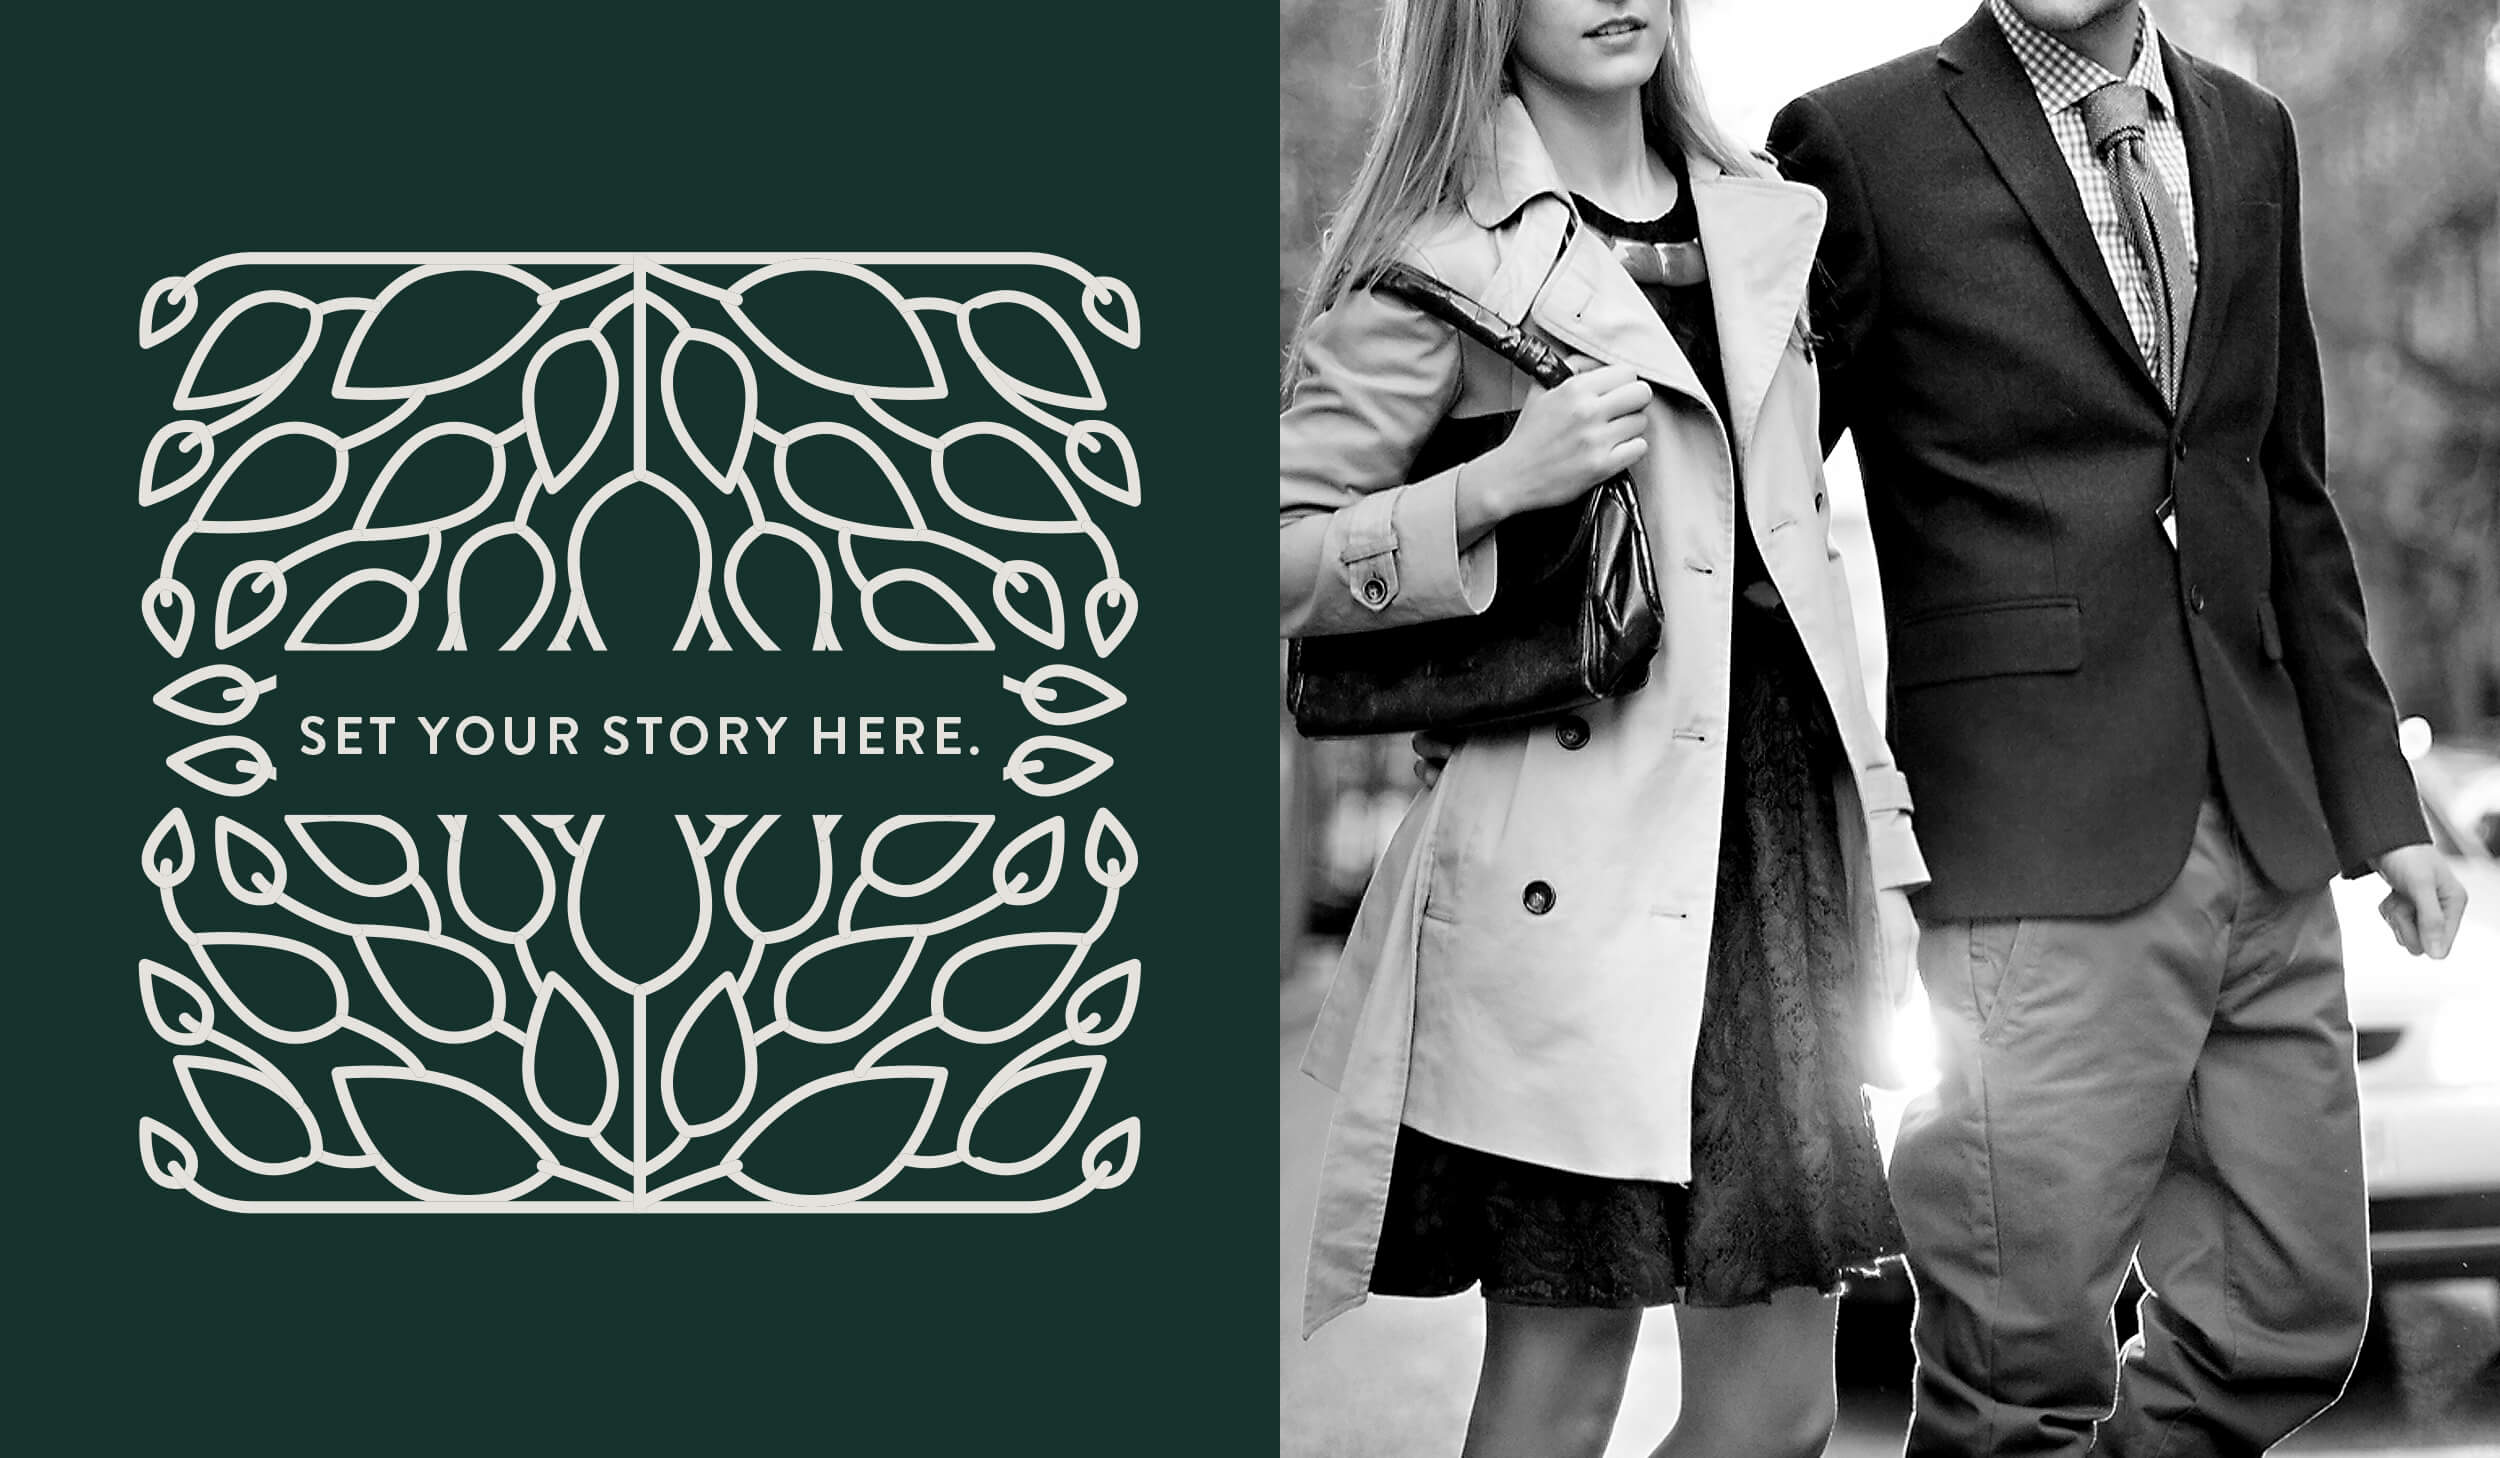 split image, on the left is a dark green rectangle with a white leaf graphic overlay and text that reads, Set Your Story Here and on the left is a black and white photo of a man and woman in dress clothes